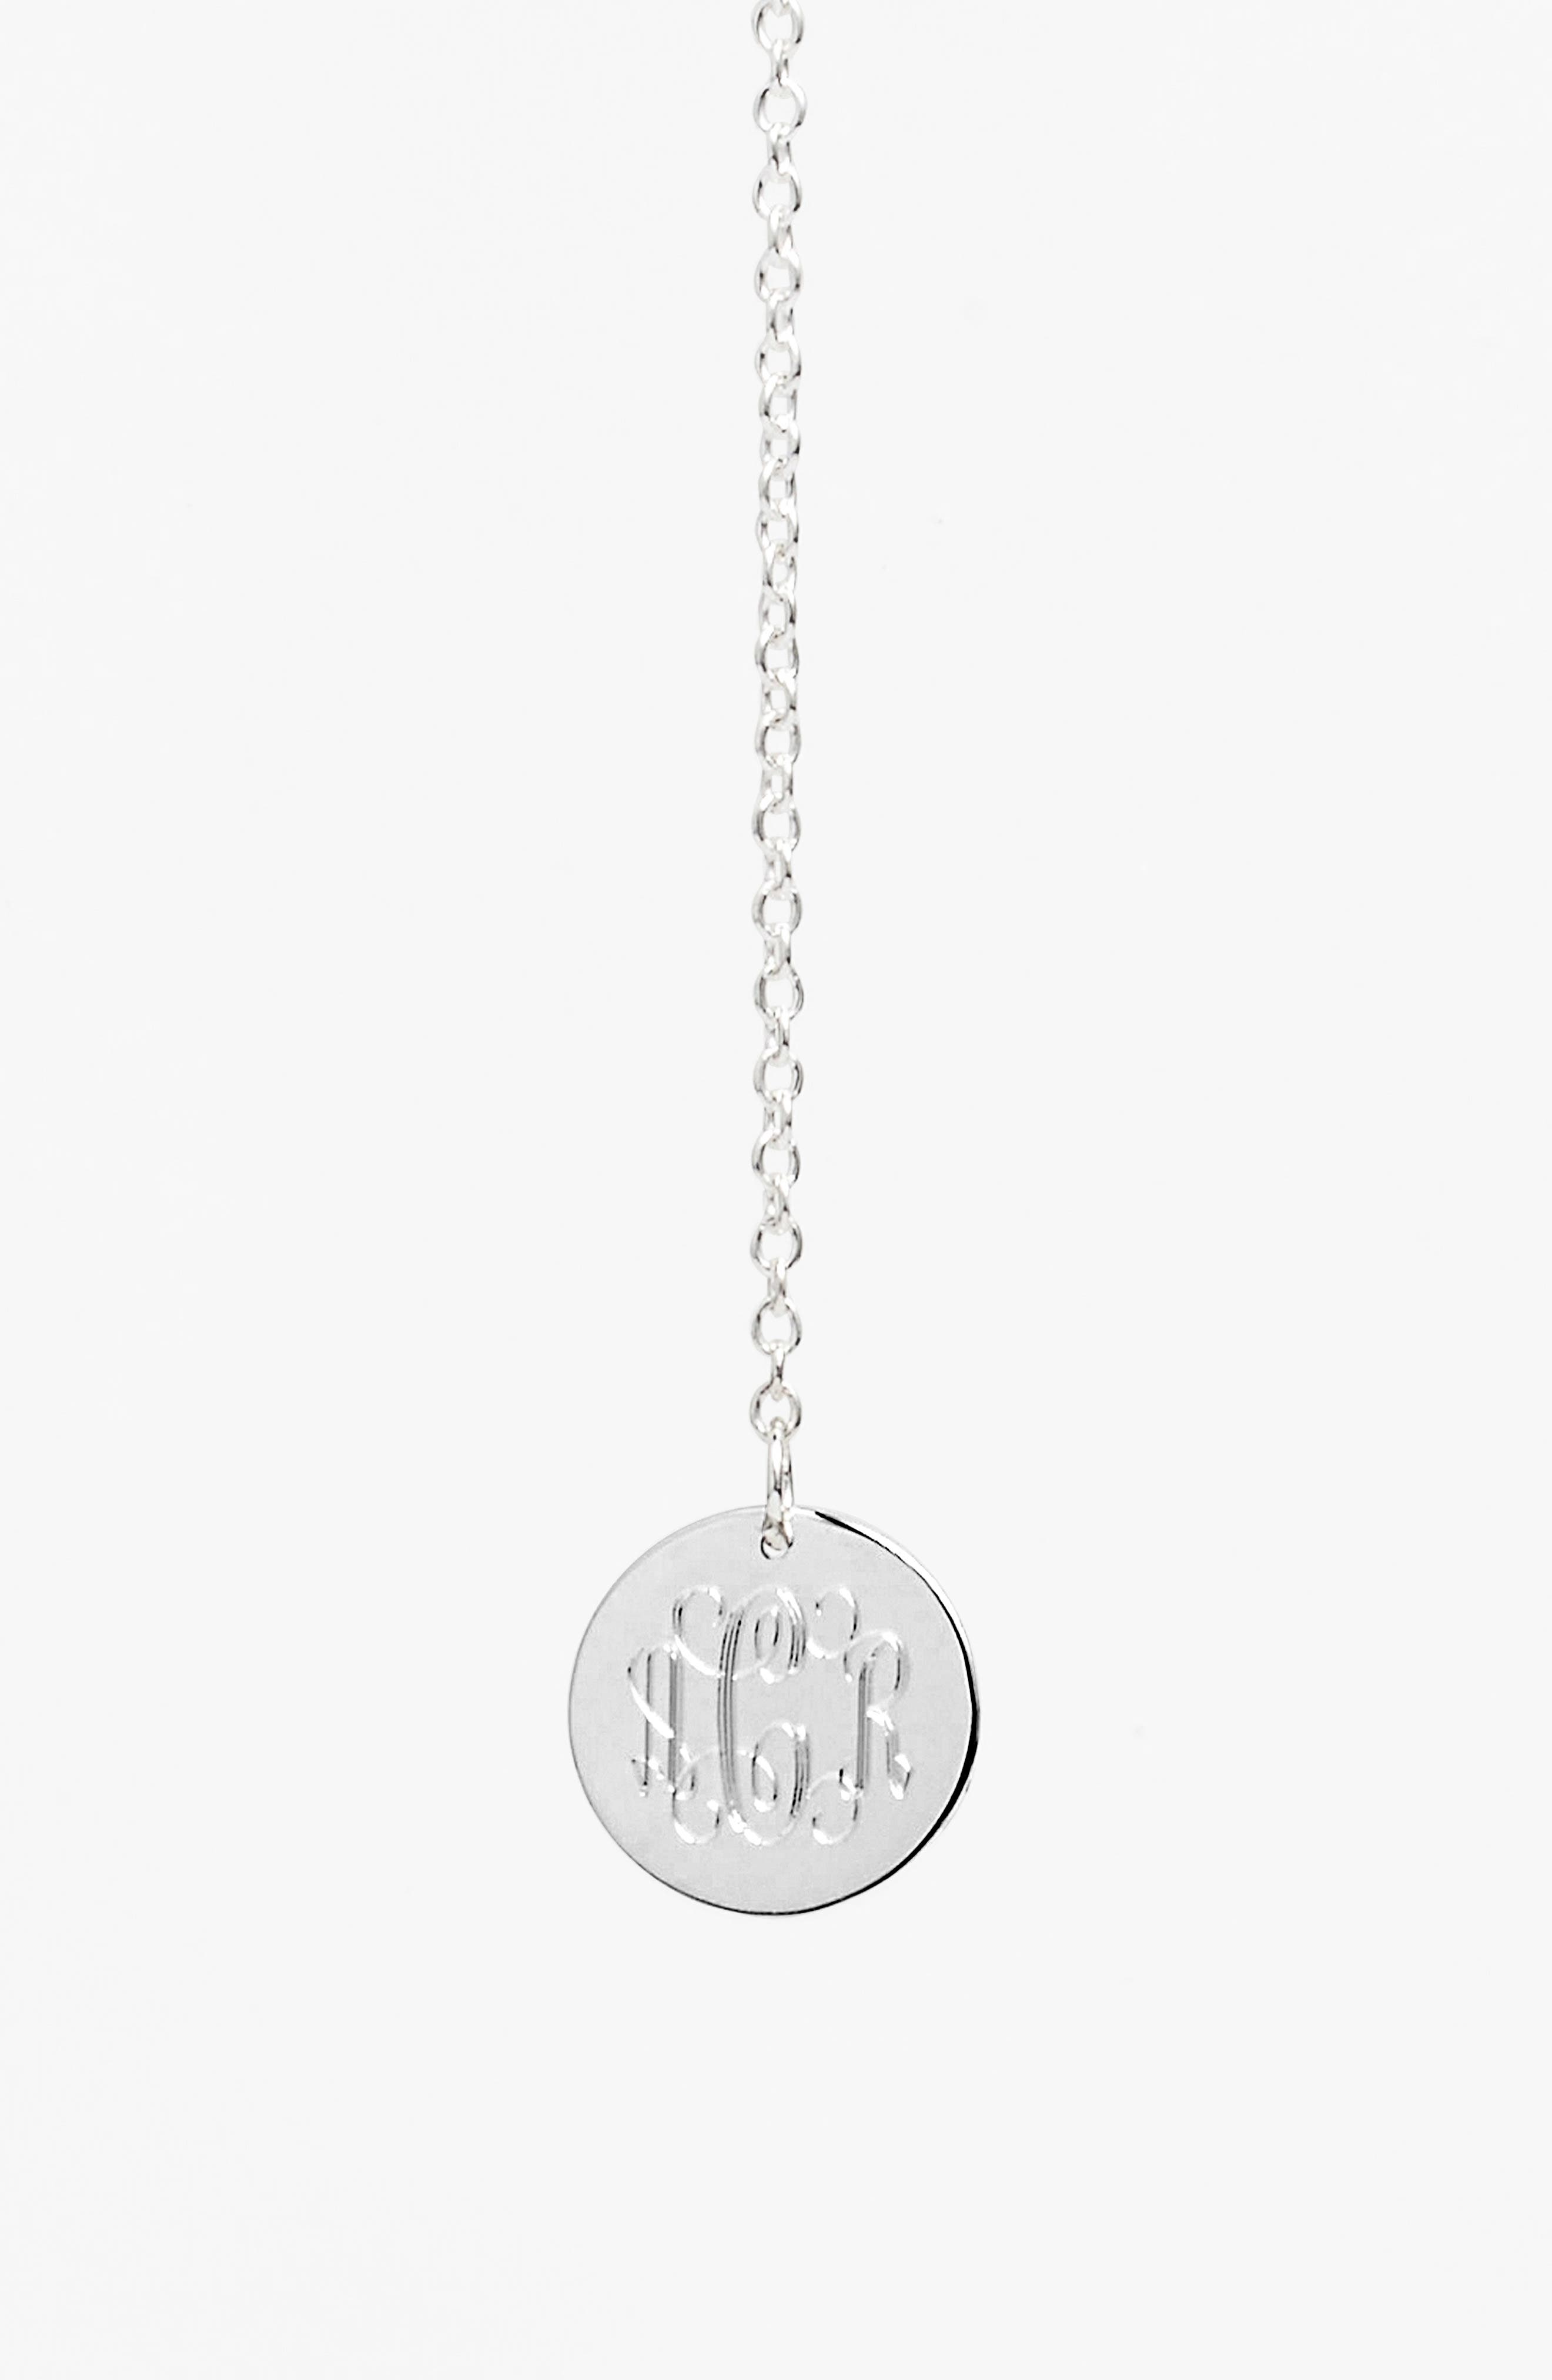 Personalized Y-Necklace,                             Alternate thumbnail 4, color,                             040